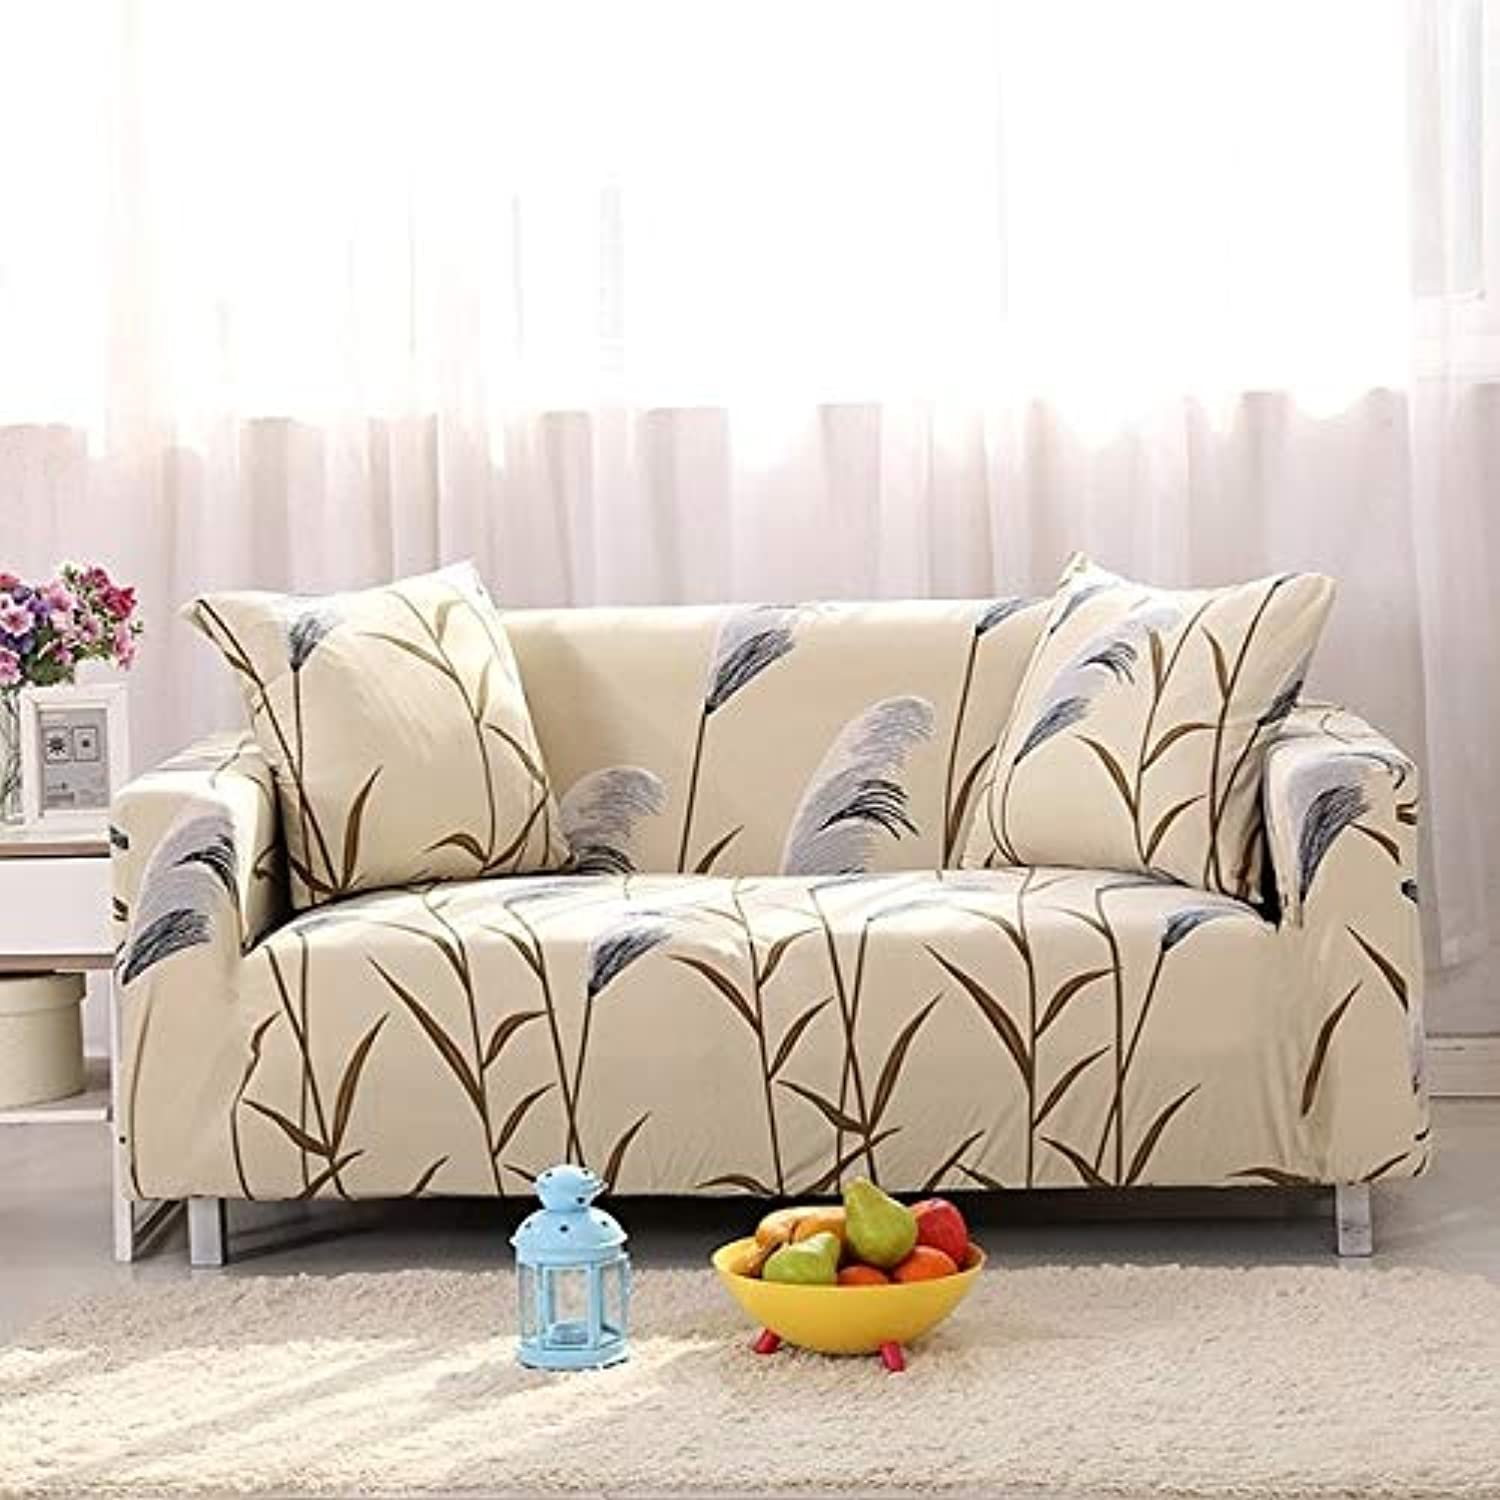 Sofa Slipcovers Spandex Funda Sofa Cover Sectional Sofa Towel Couch Cover for Living Room Cubre Sofa copridivano 1 2 3 4-seater   color 4, 2-Seater 145-185cm